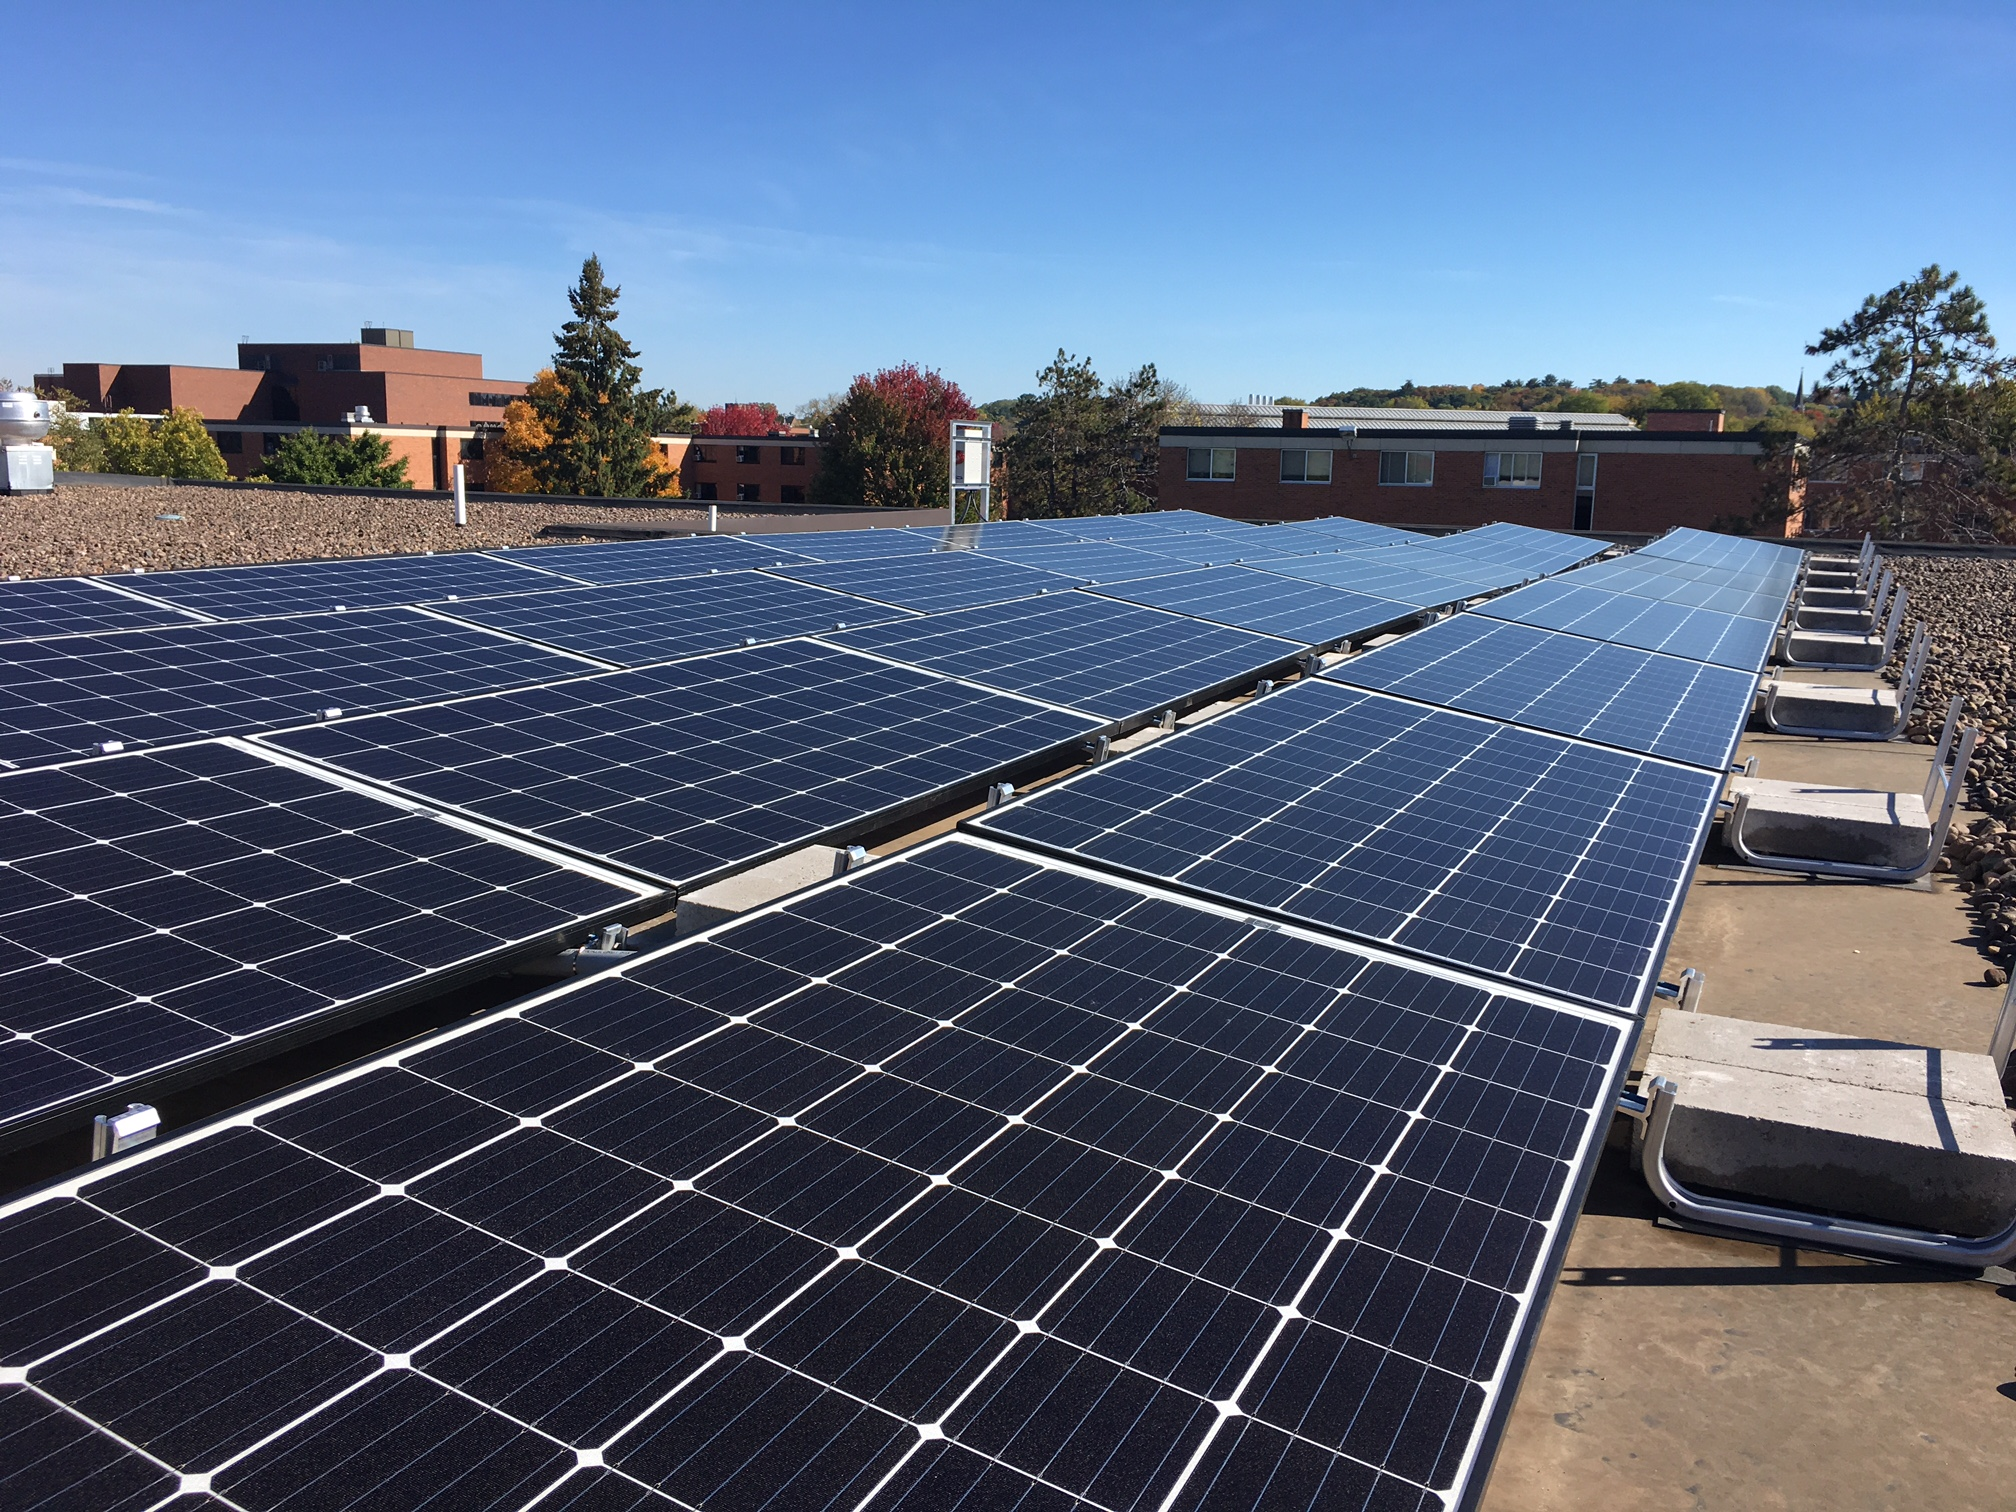 UW-Stout Price Commons Solar Panels